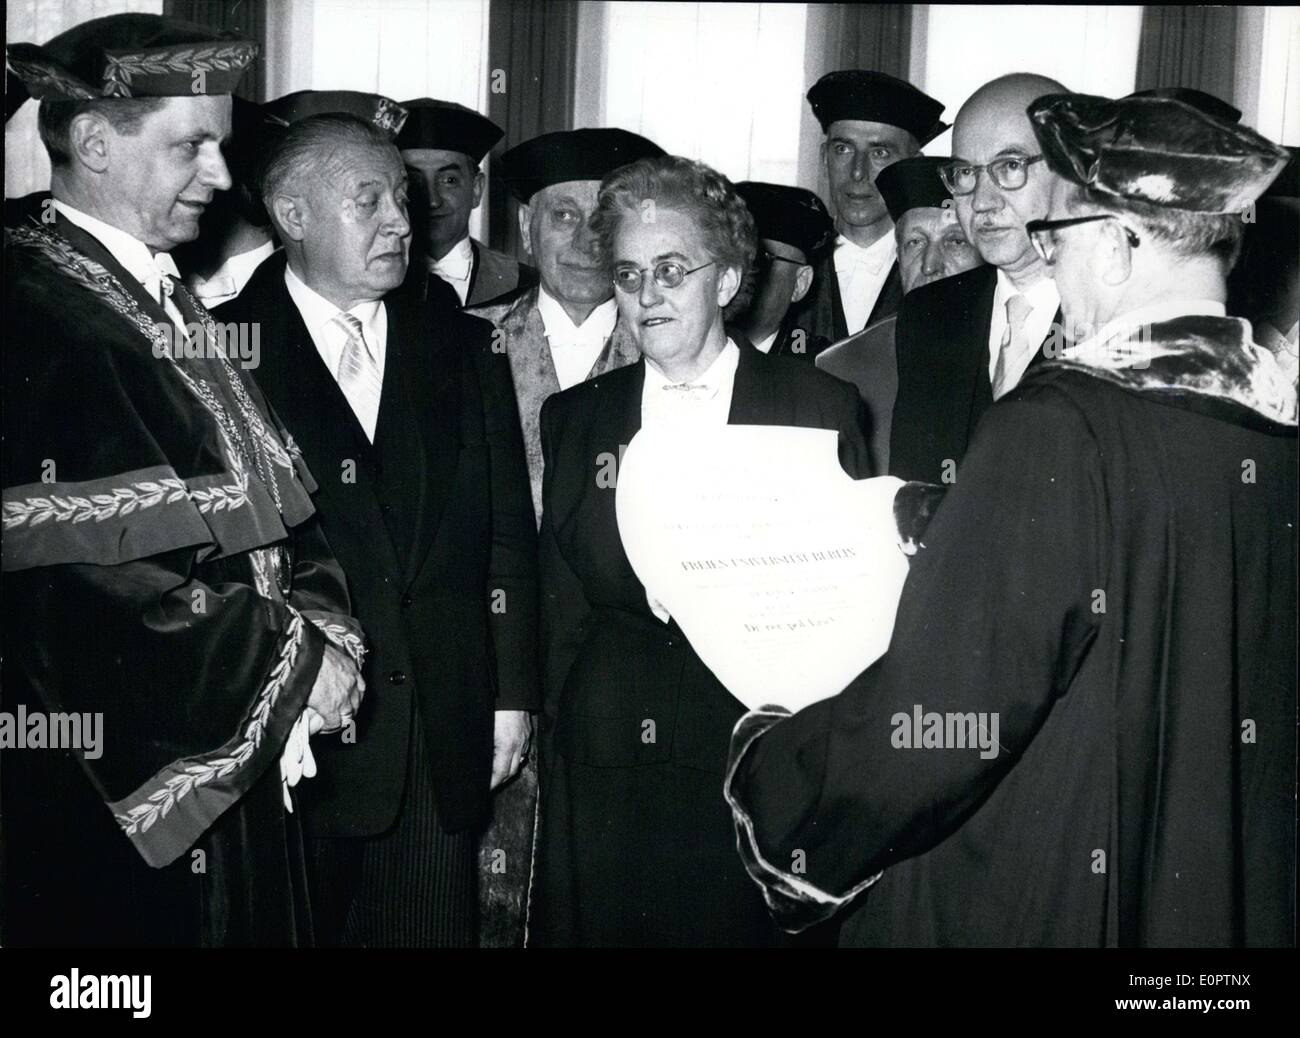 Feb. 23, 1957 - The Economic and Social Sciences faculty of Freien University in Berlin honored Mrs. Dulles today. She is a consultant on economic problems in the German division of the American State Department. Pictured: Middle - Mrs. Eleanor Dulles Left - Rector of the university Prof. Dr. Andreas Paulsen Right with certificate - Prof. Dr. Karl Thalheim, dean of Economic and Social Sciences Faculty. - Stock Image